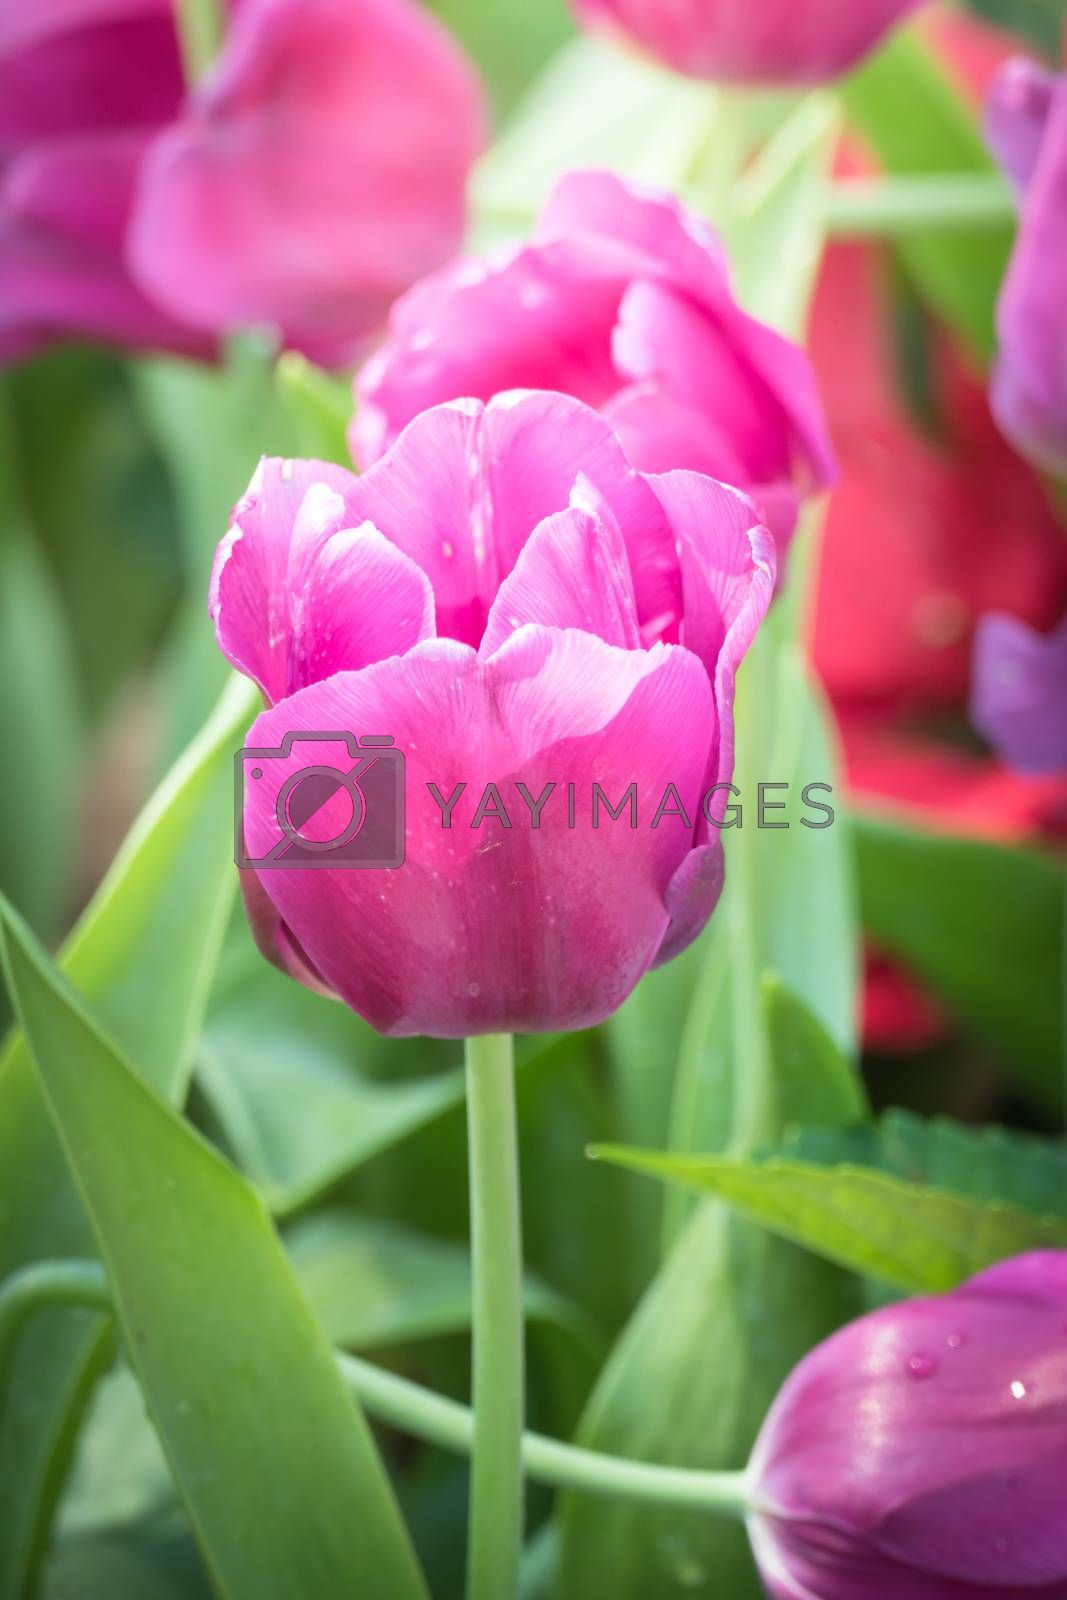 Beautiful bouquet of tulips. colorful tulips. nature background by teerawit